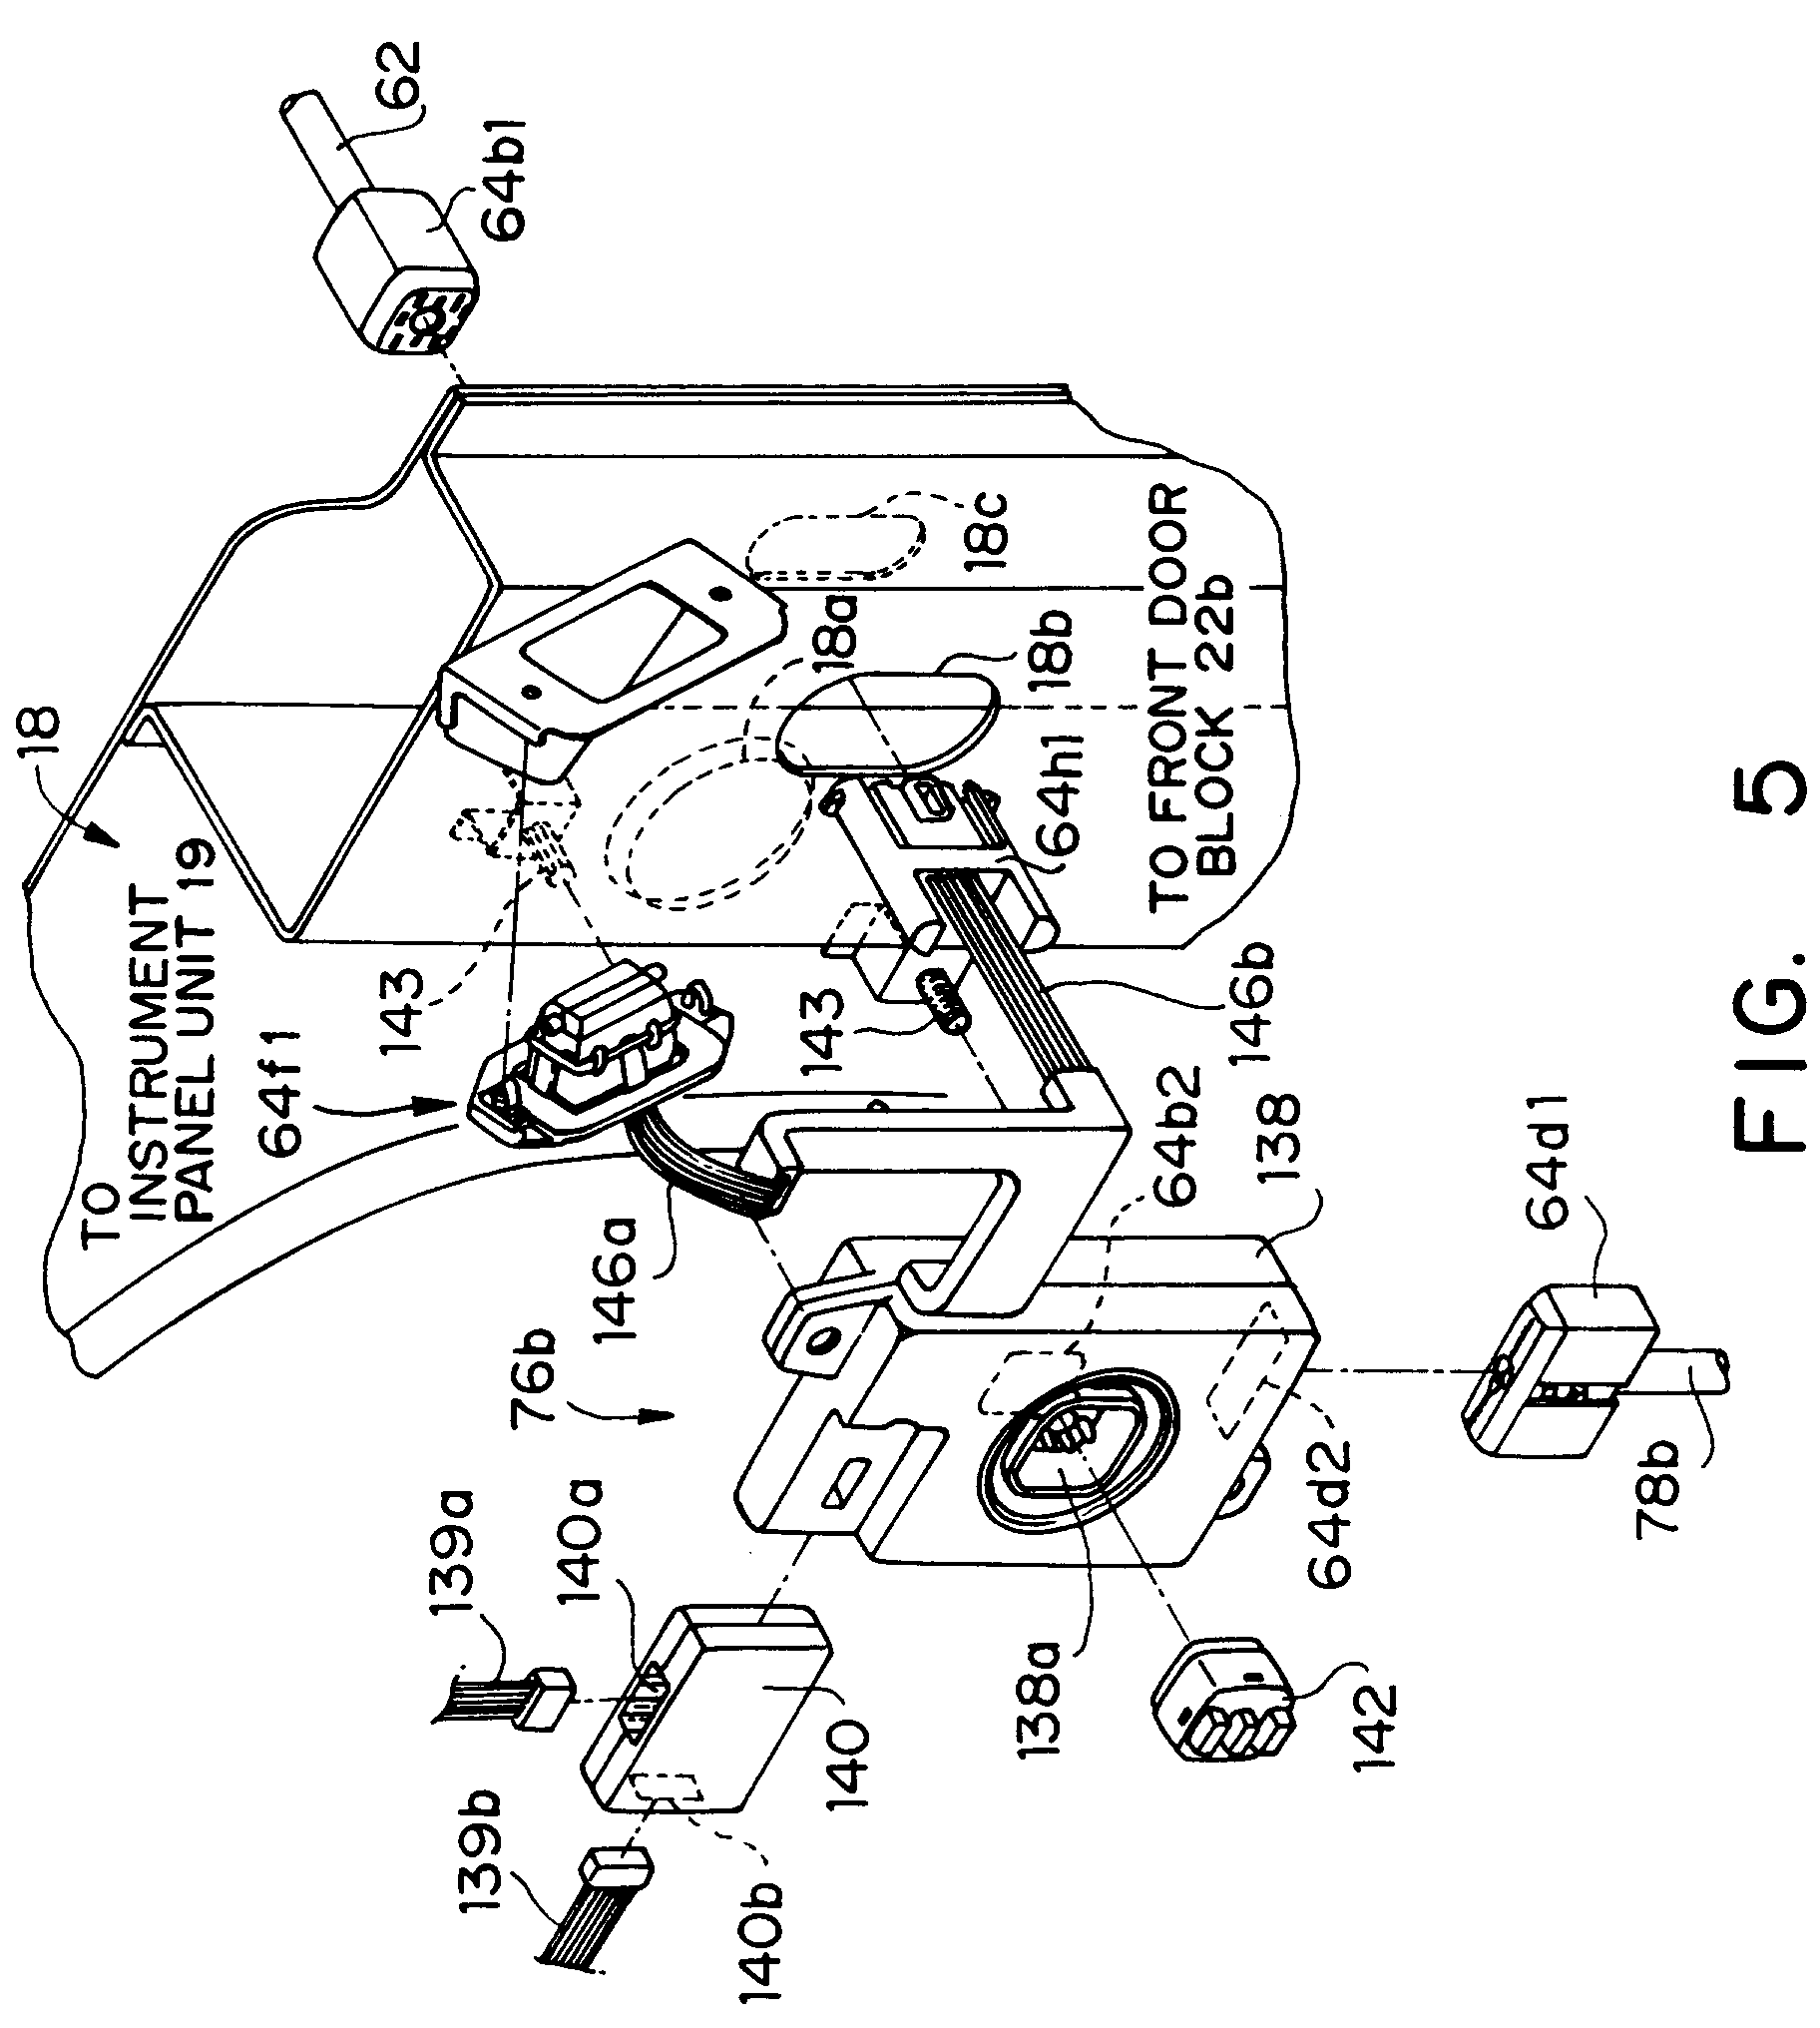 Patent Ep0507225b1 Electrical Wiring Harness Structure